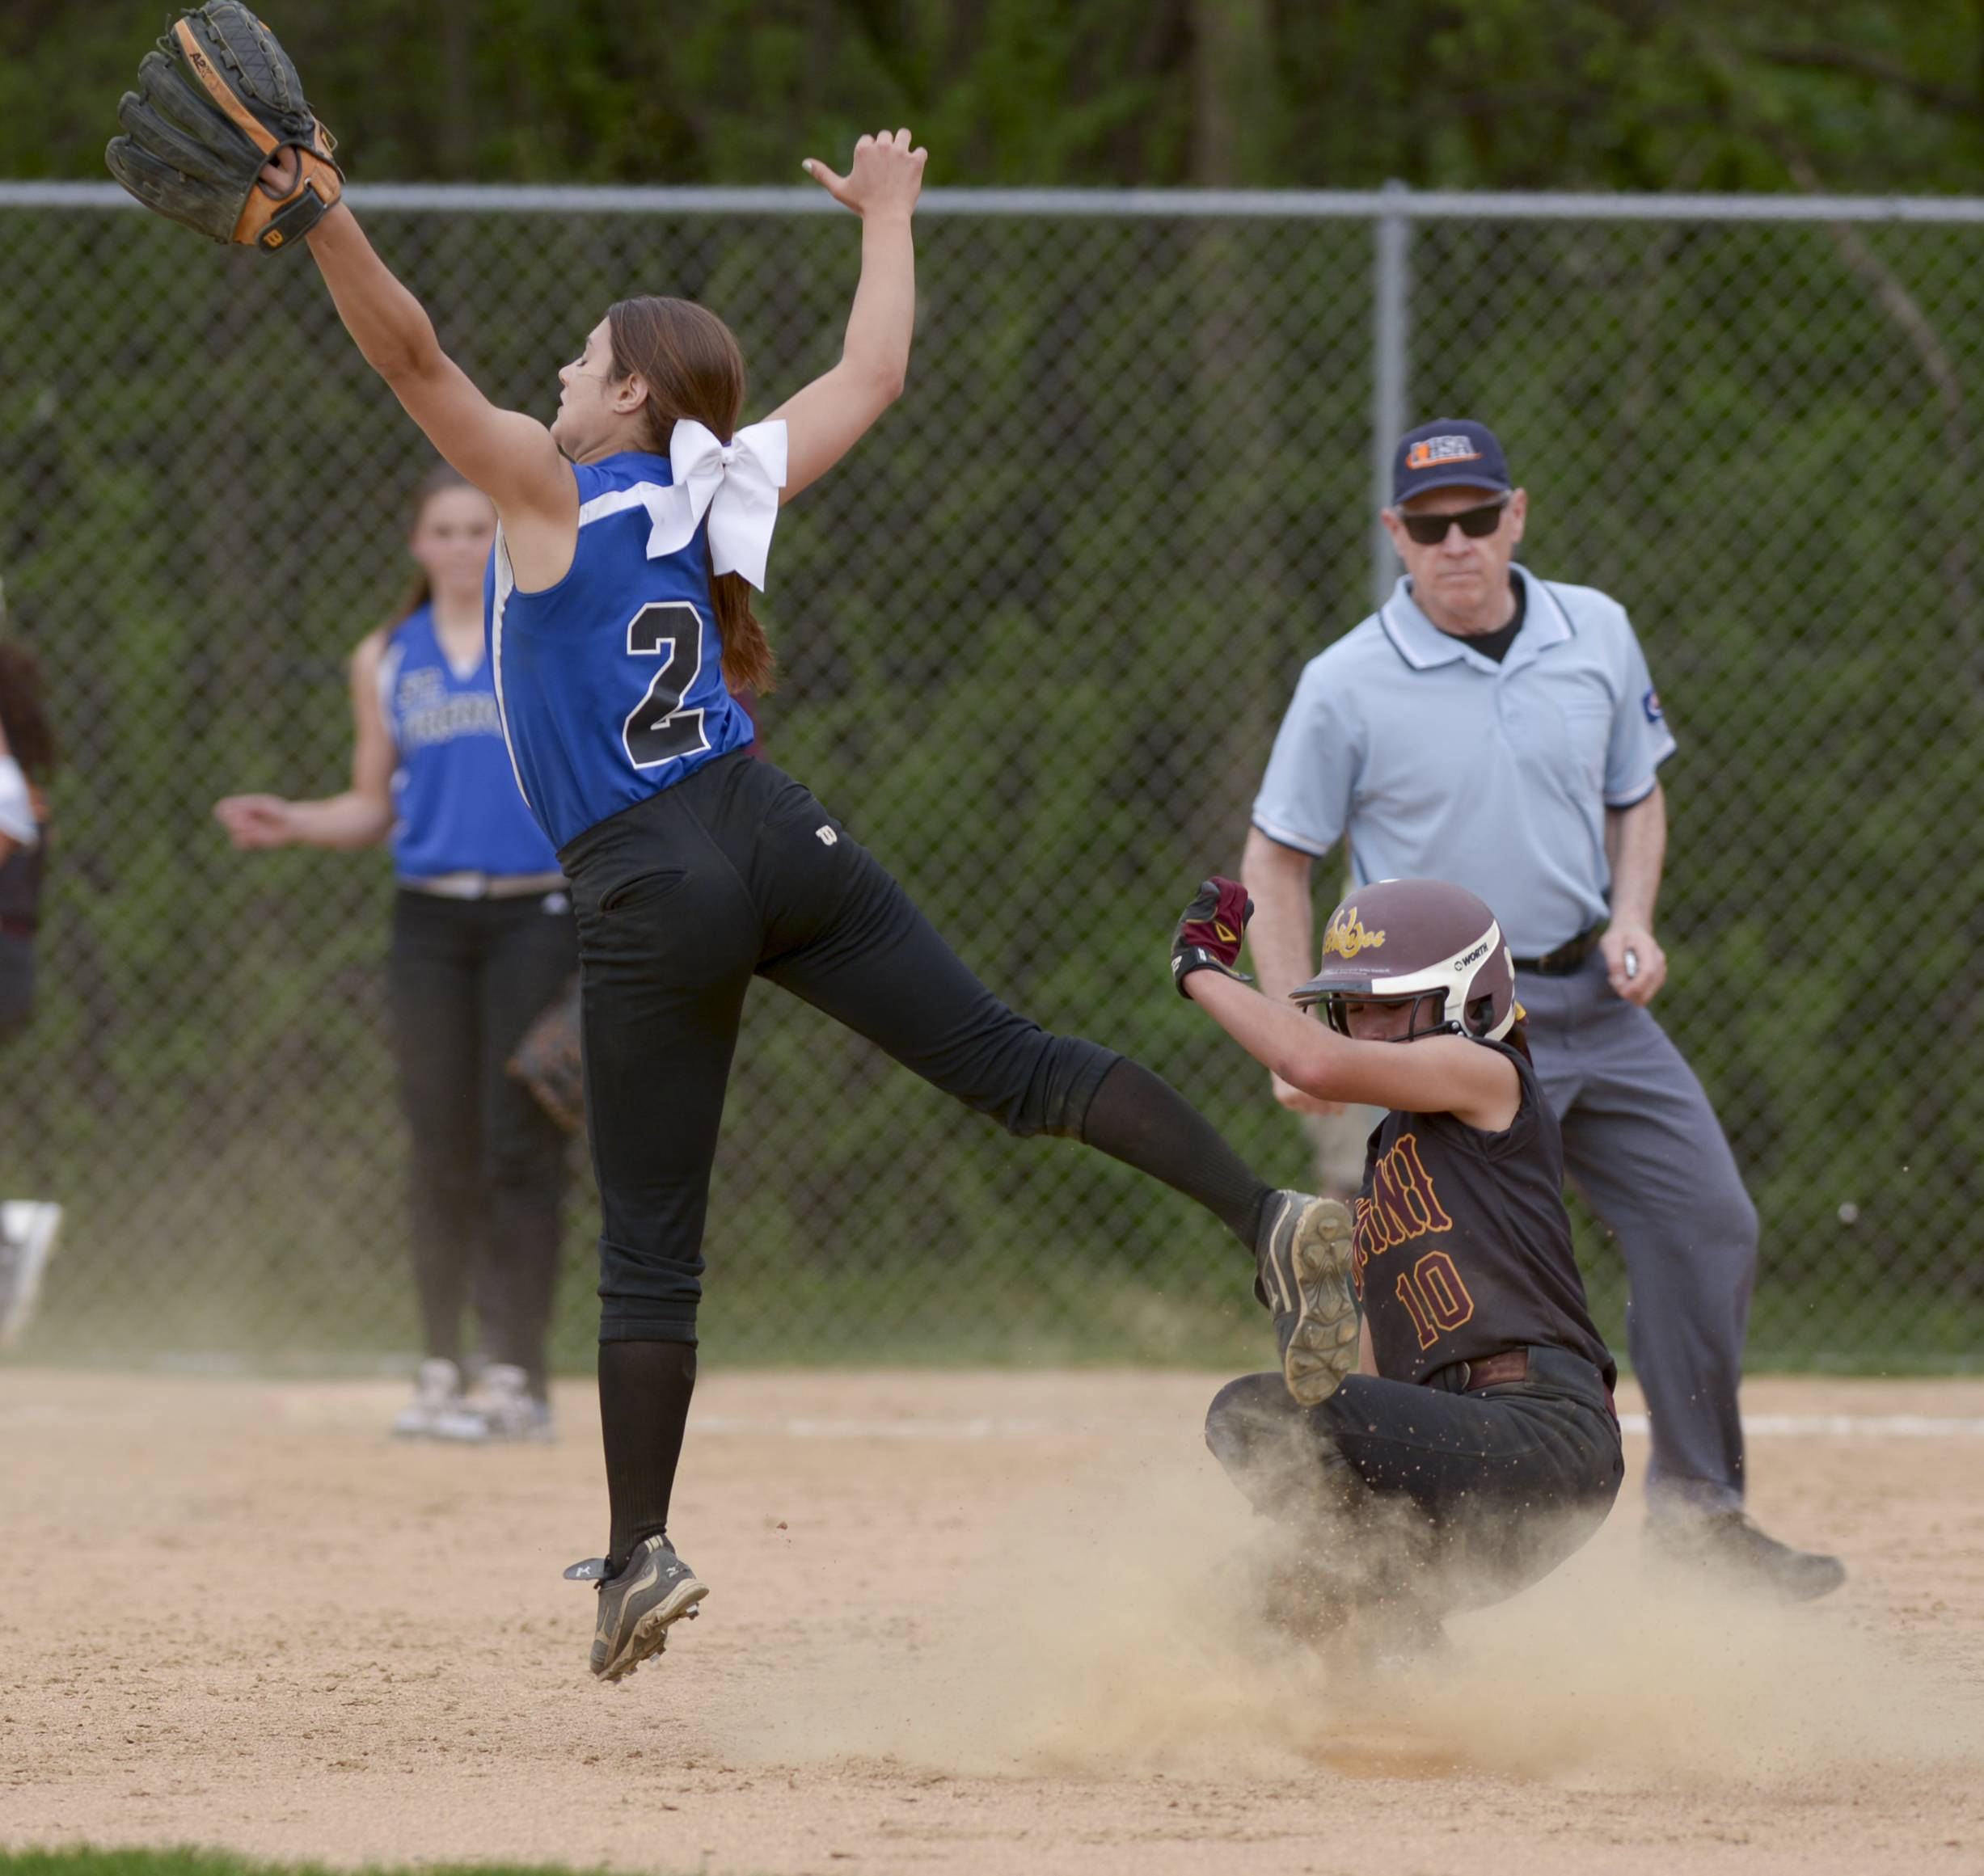 St. Francis' Jamie Smith comes up short as Montini's Cristina Barrett makes it safely to 2nd during softball action in Wheaton Thursday.